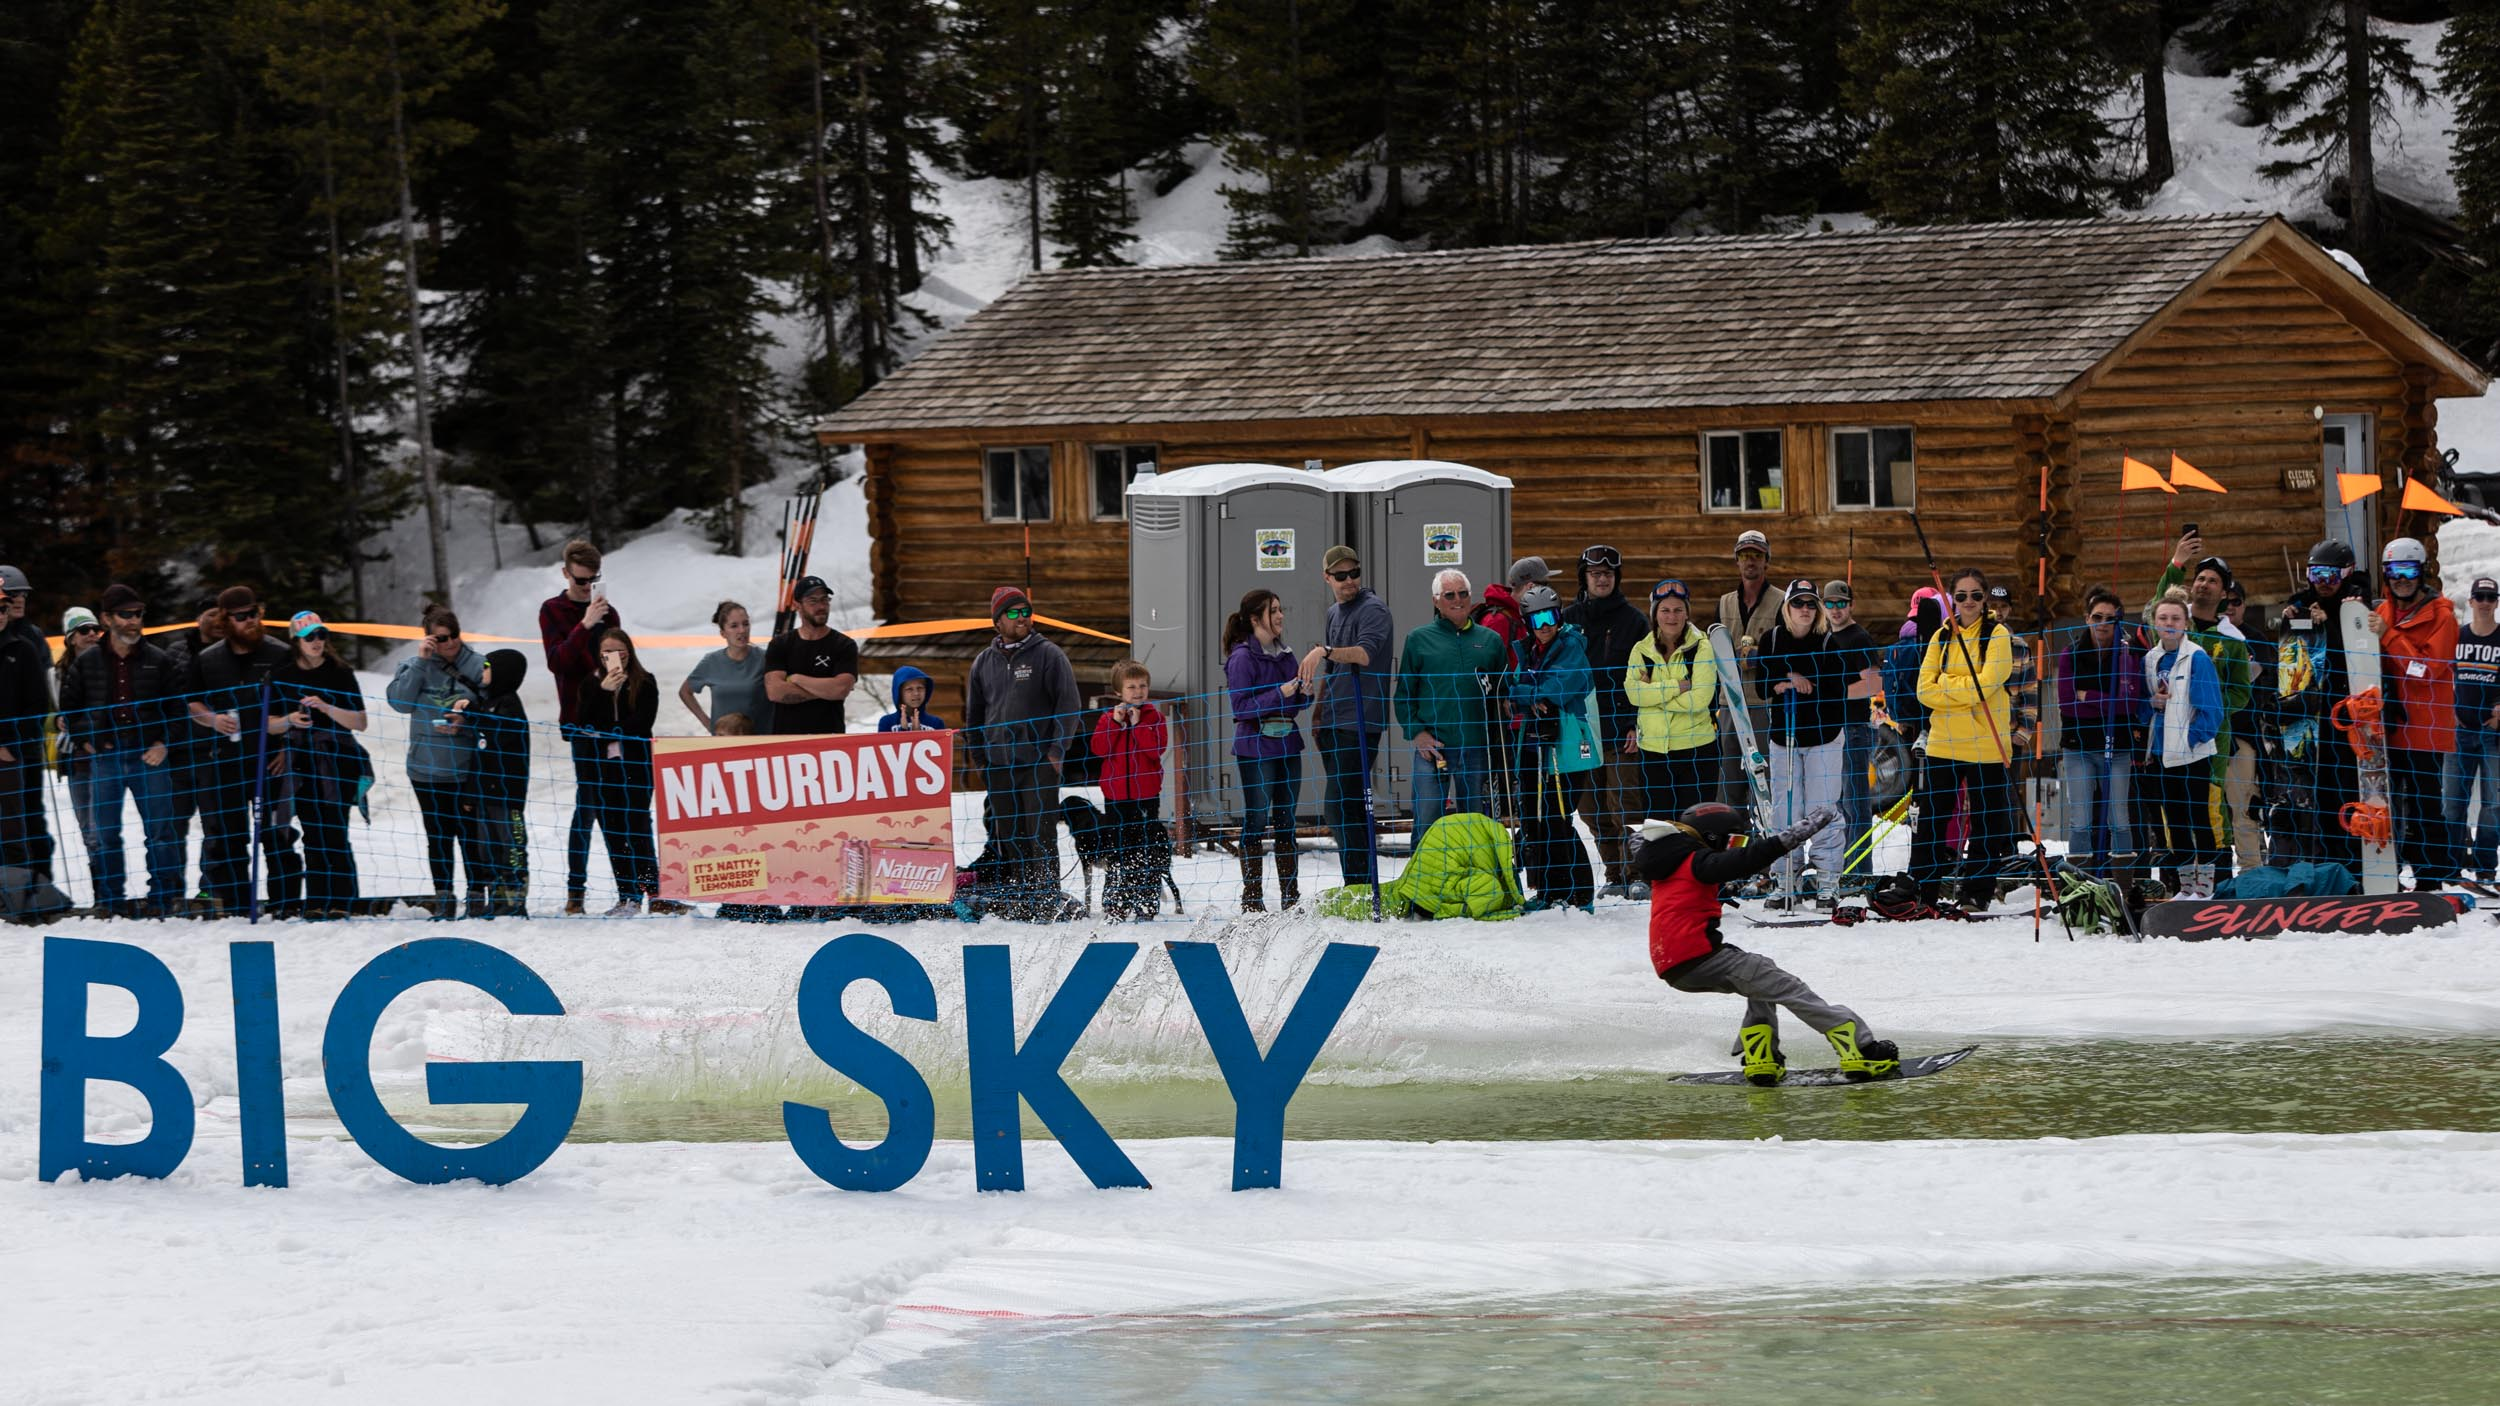 Big Sky Resort Pond Skim-7.jpg